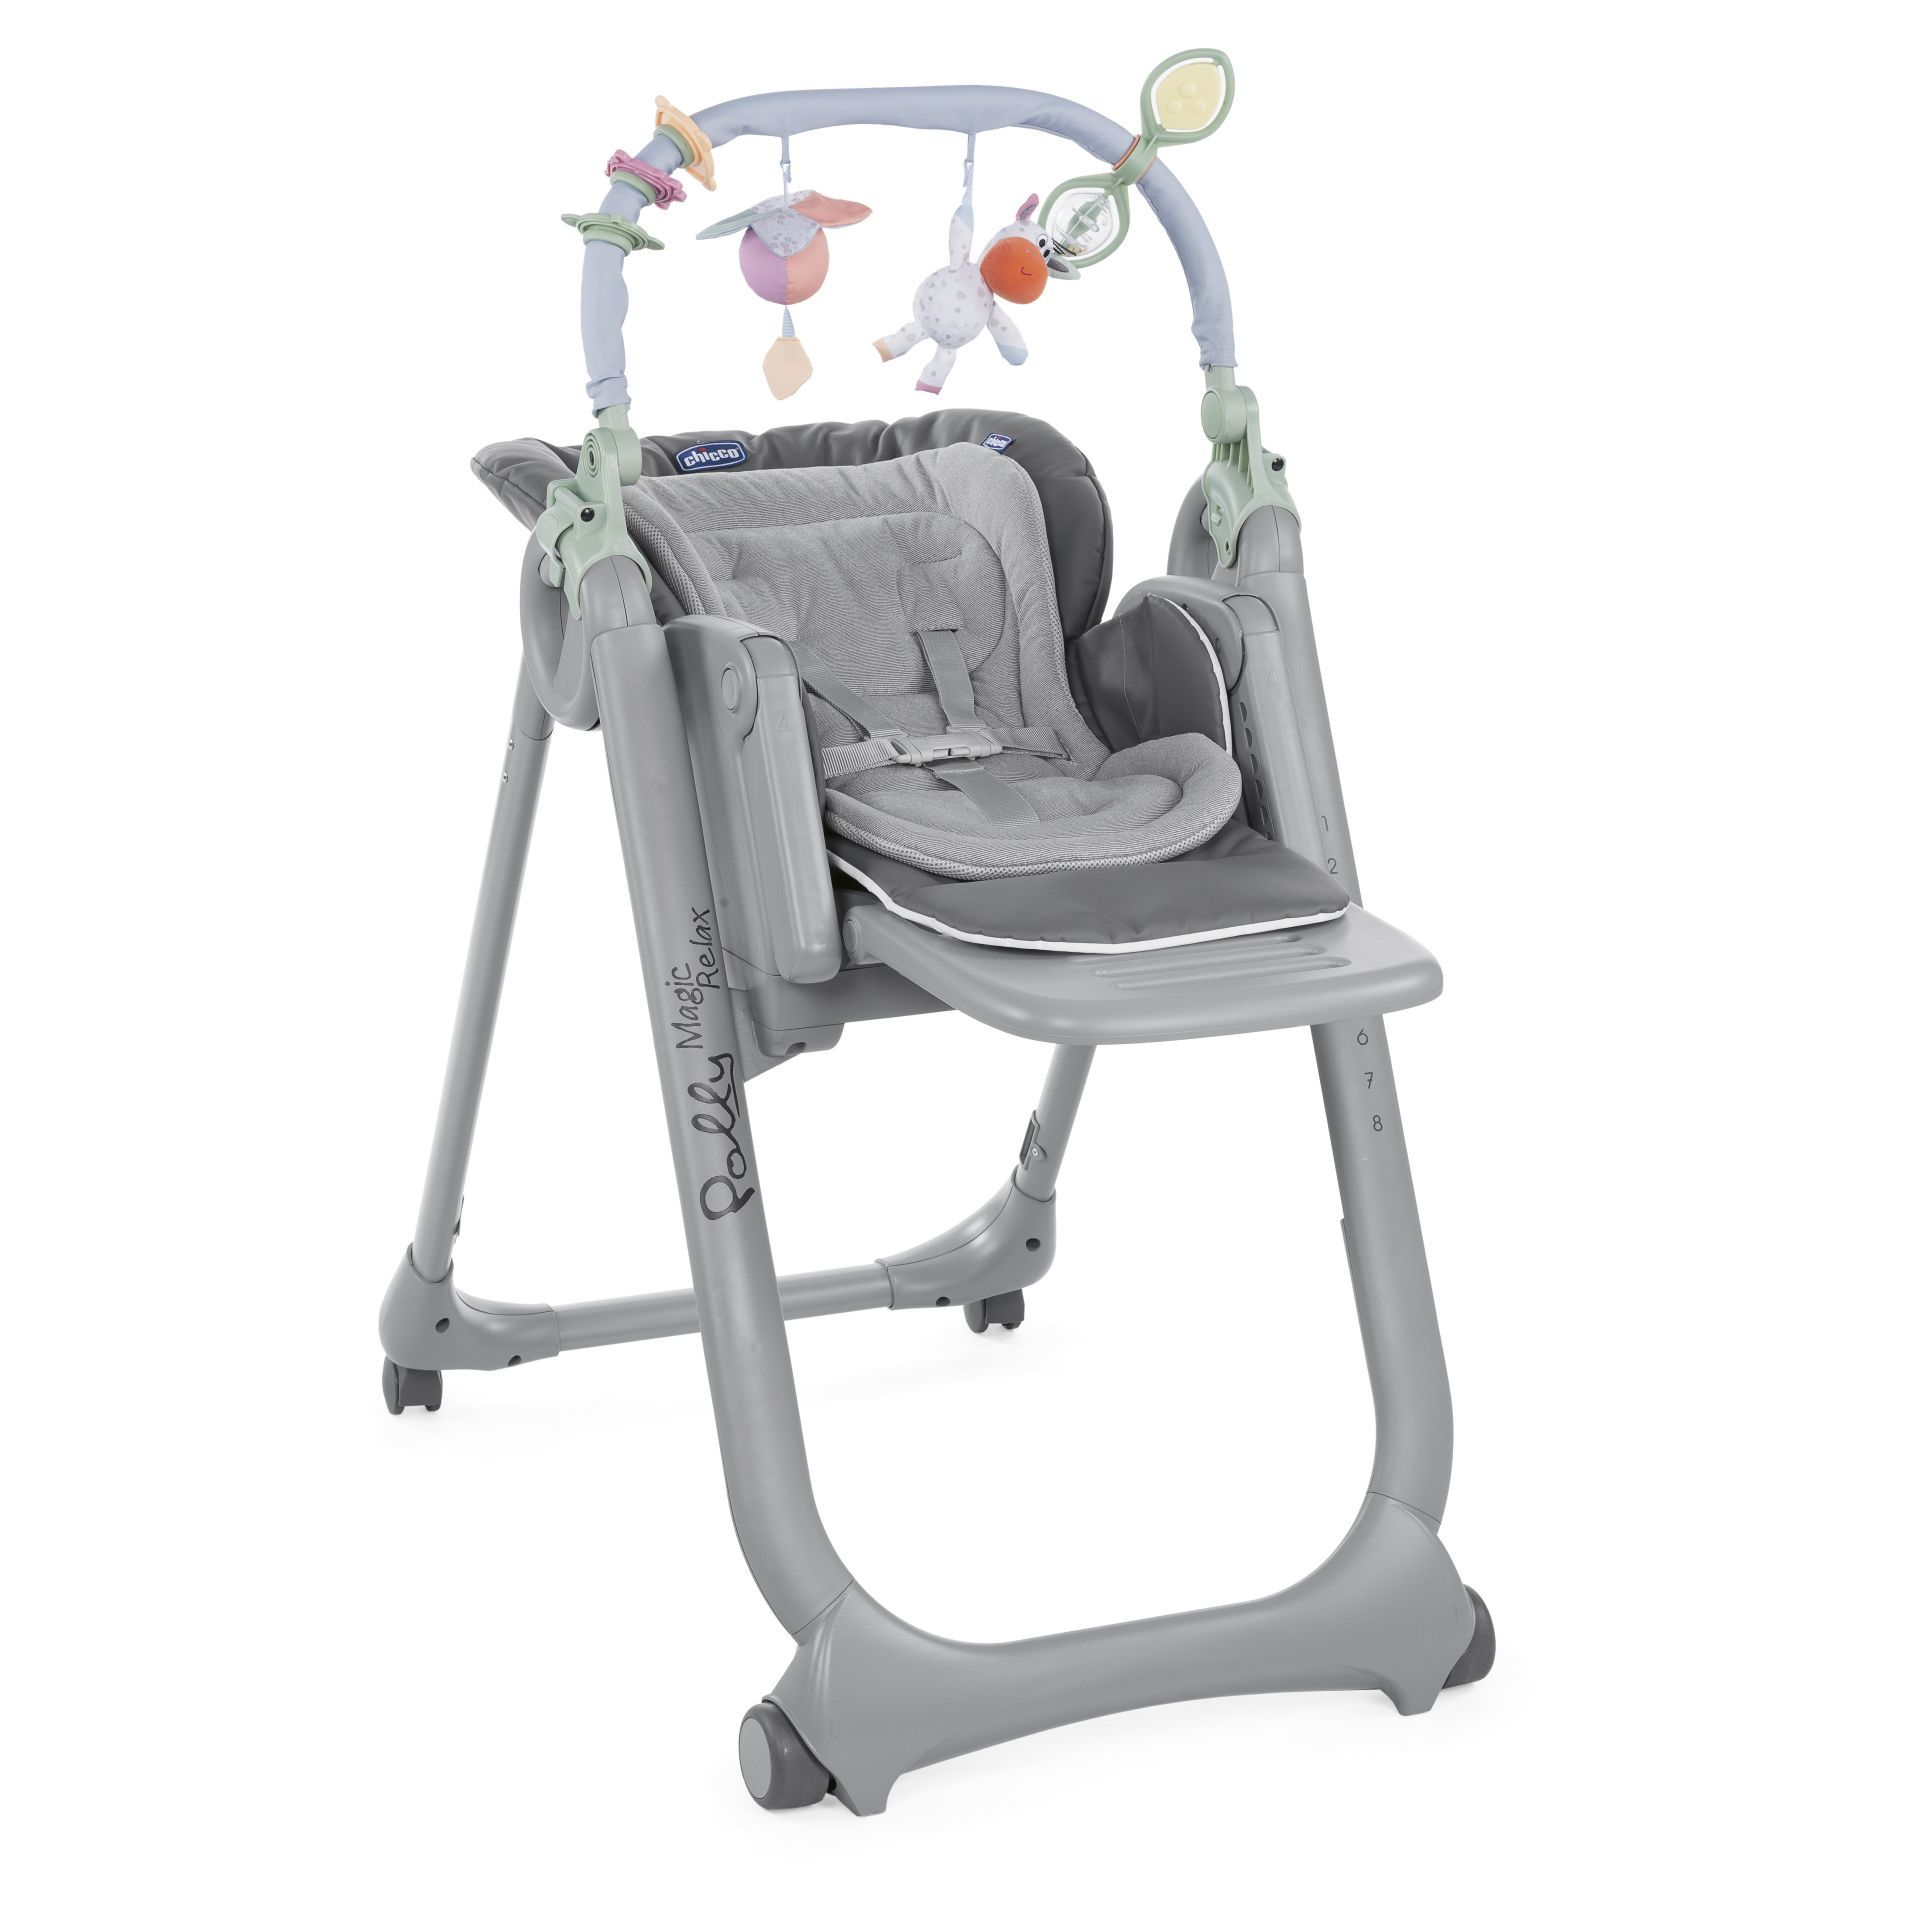 127 Reference Of High Chair Chicco Polly Magic In 2020 High Chair Chair Baby High Chair